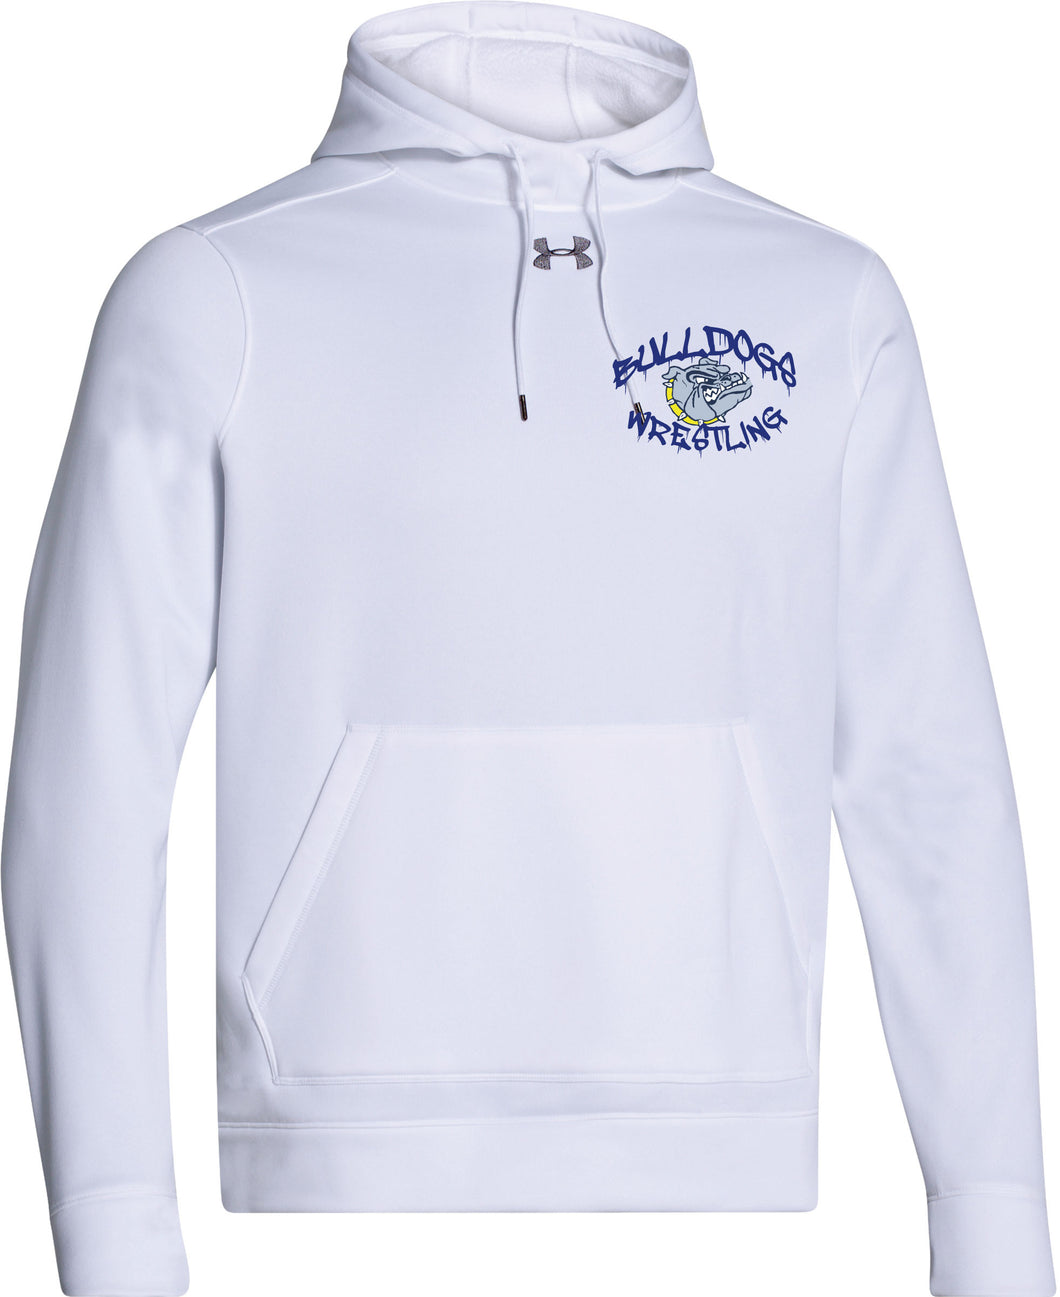 Bulldogs Wrestling Under Armour Fleece Hoody